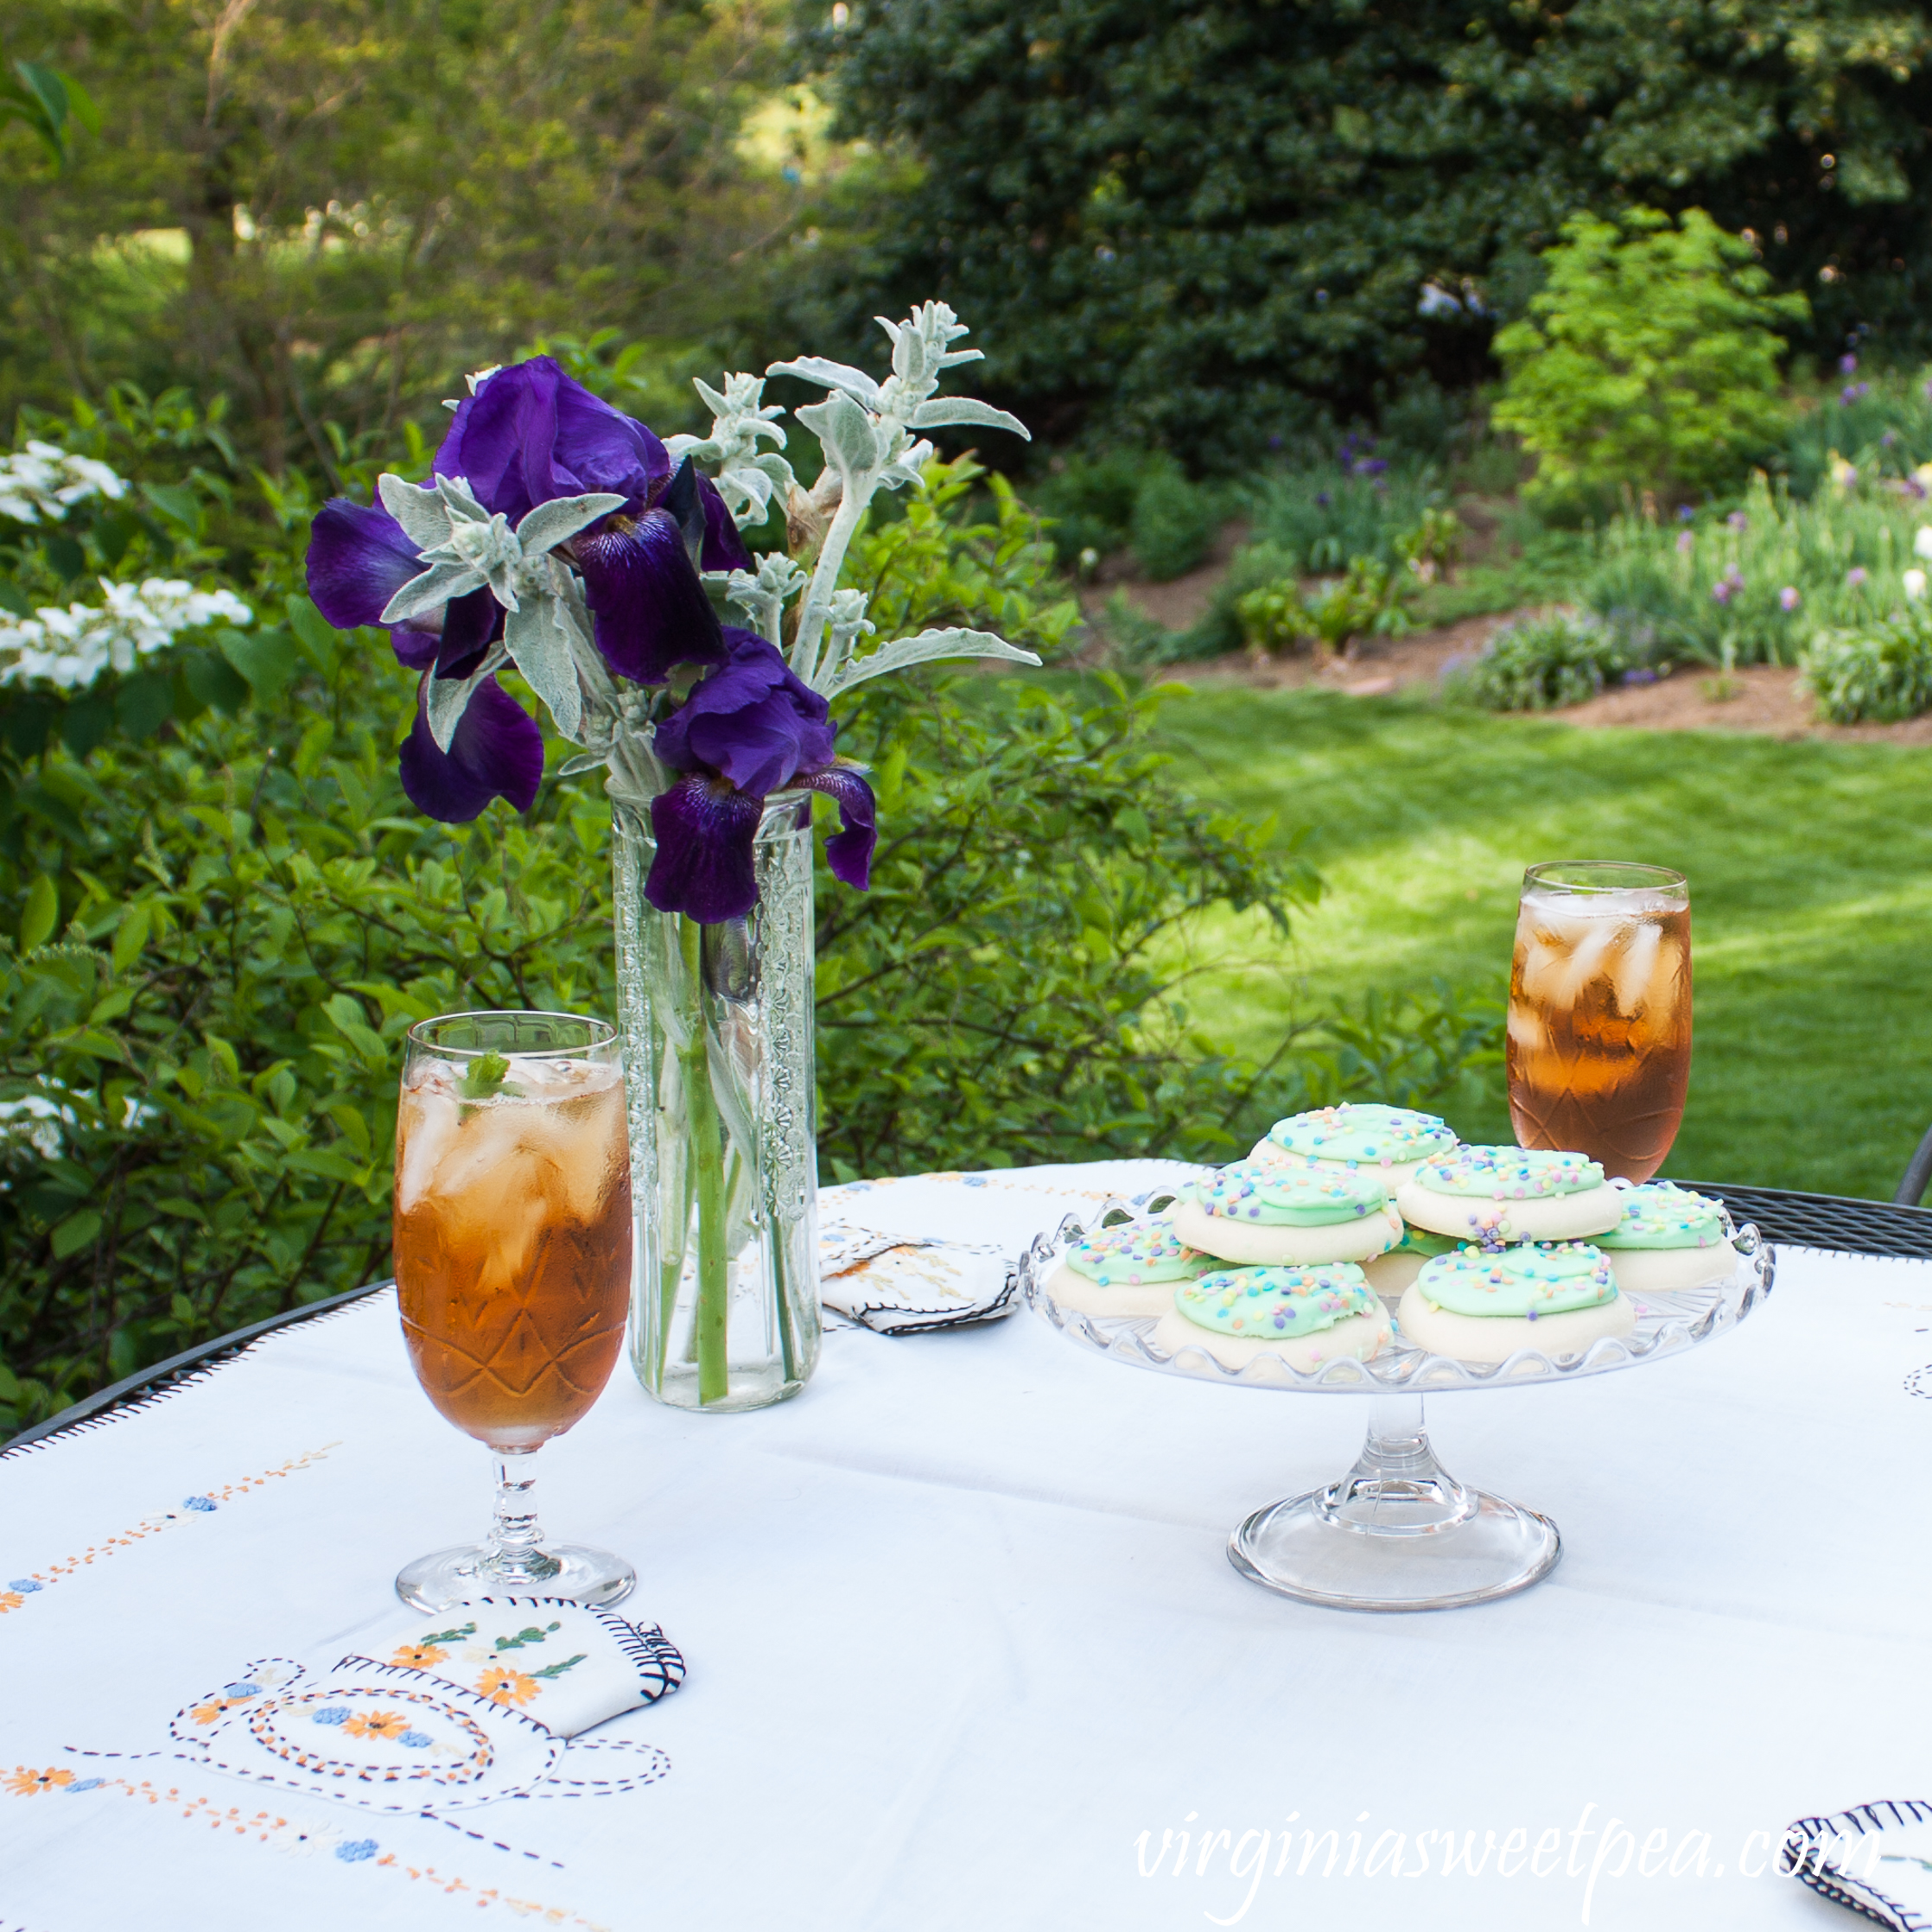 Spring Tea Party with Vintage - A garden tea party includes a table set with vintage crystal, a vintage cake stand, and a tablecloth from the early 1930's.